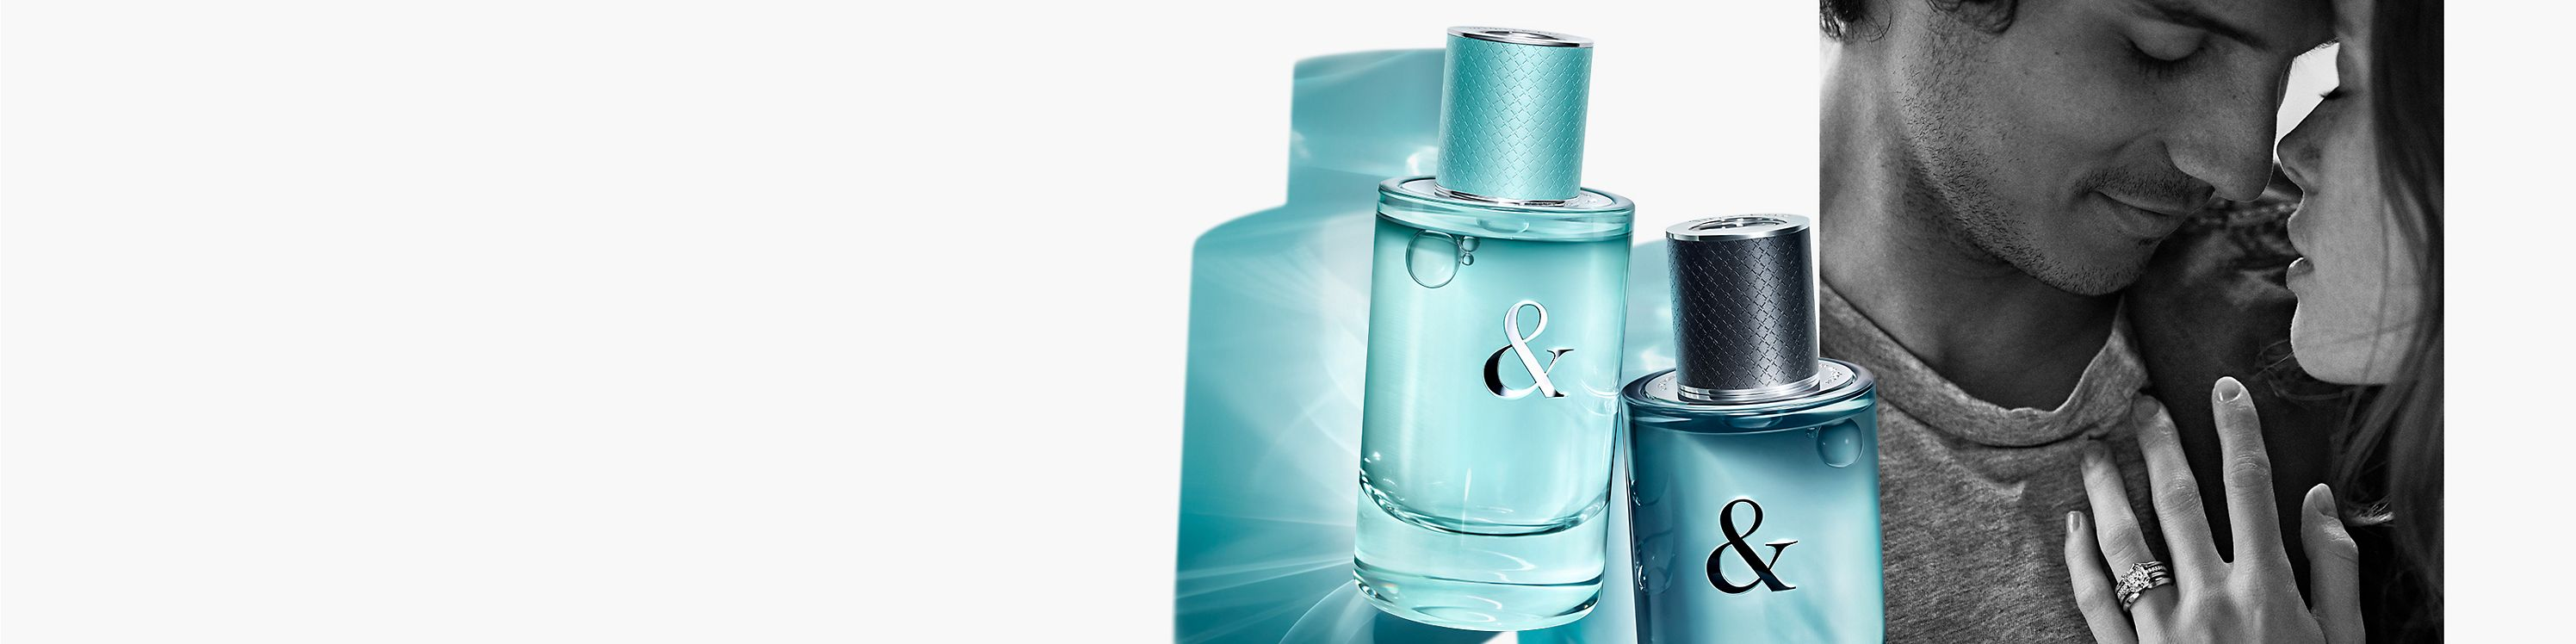 Tiffany Fragrance